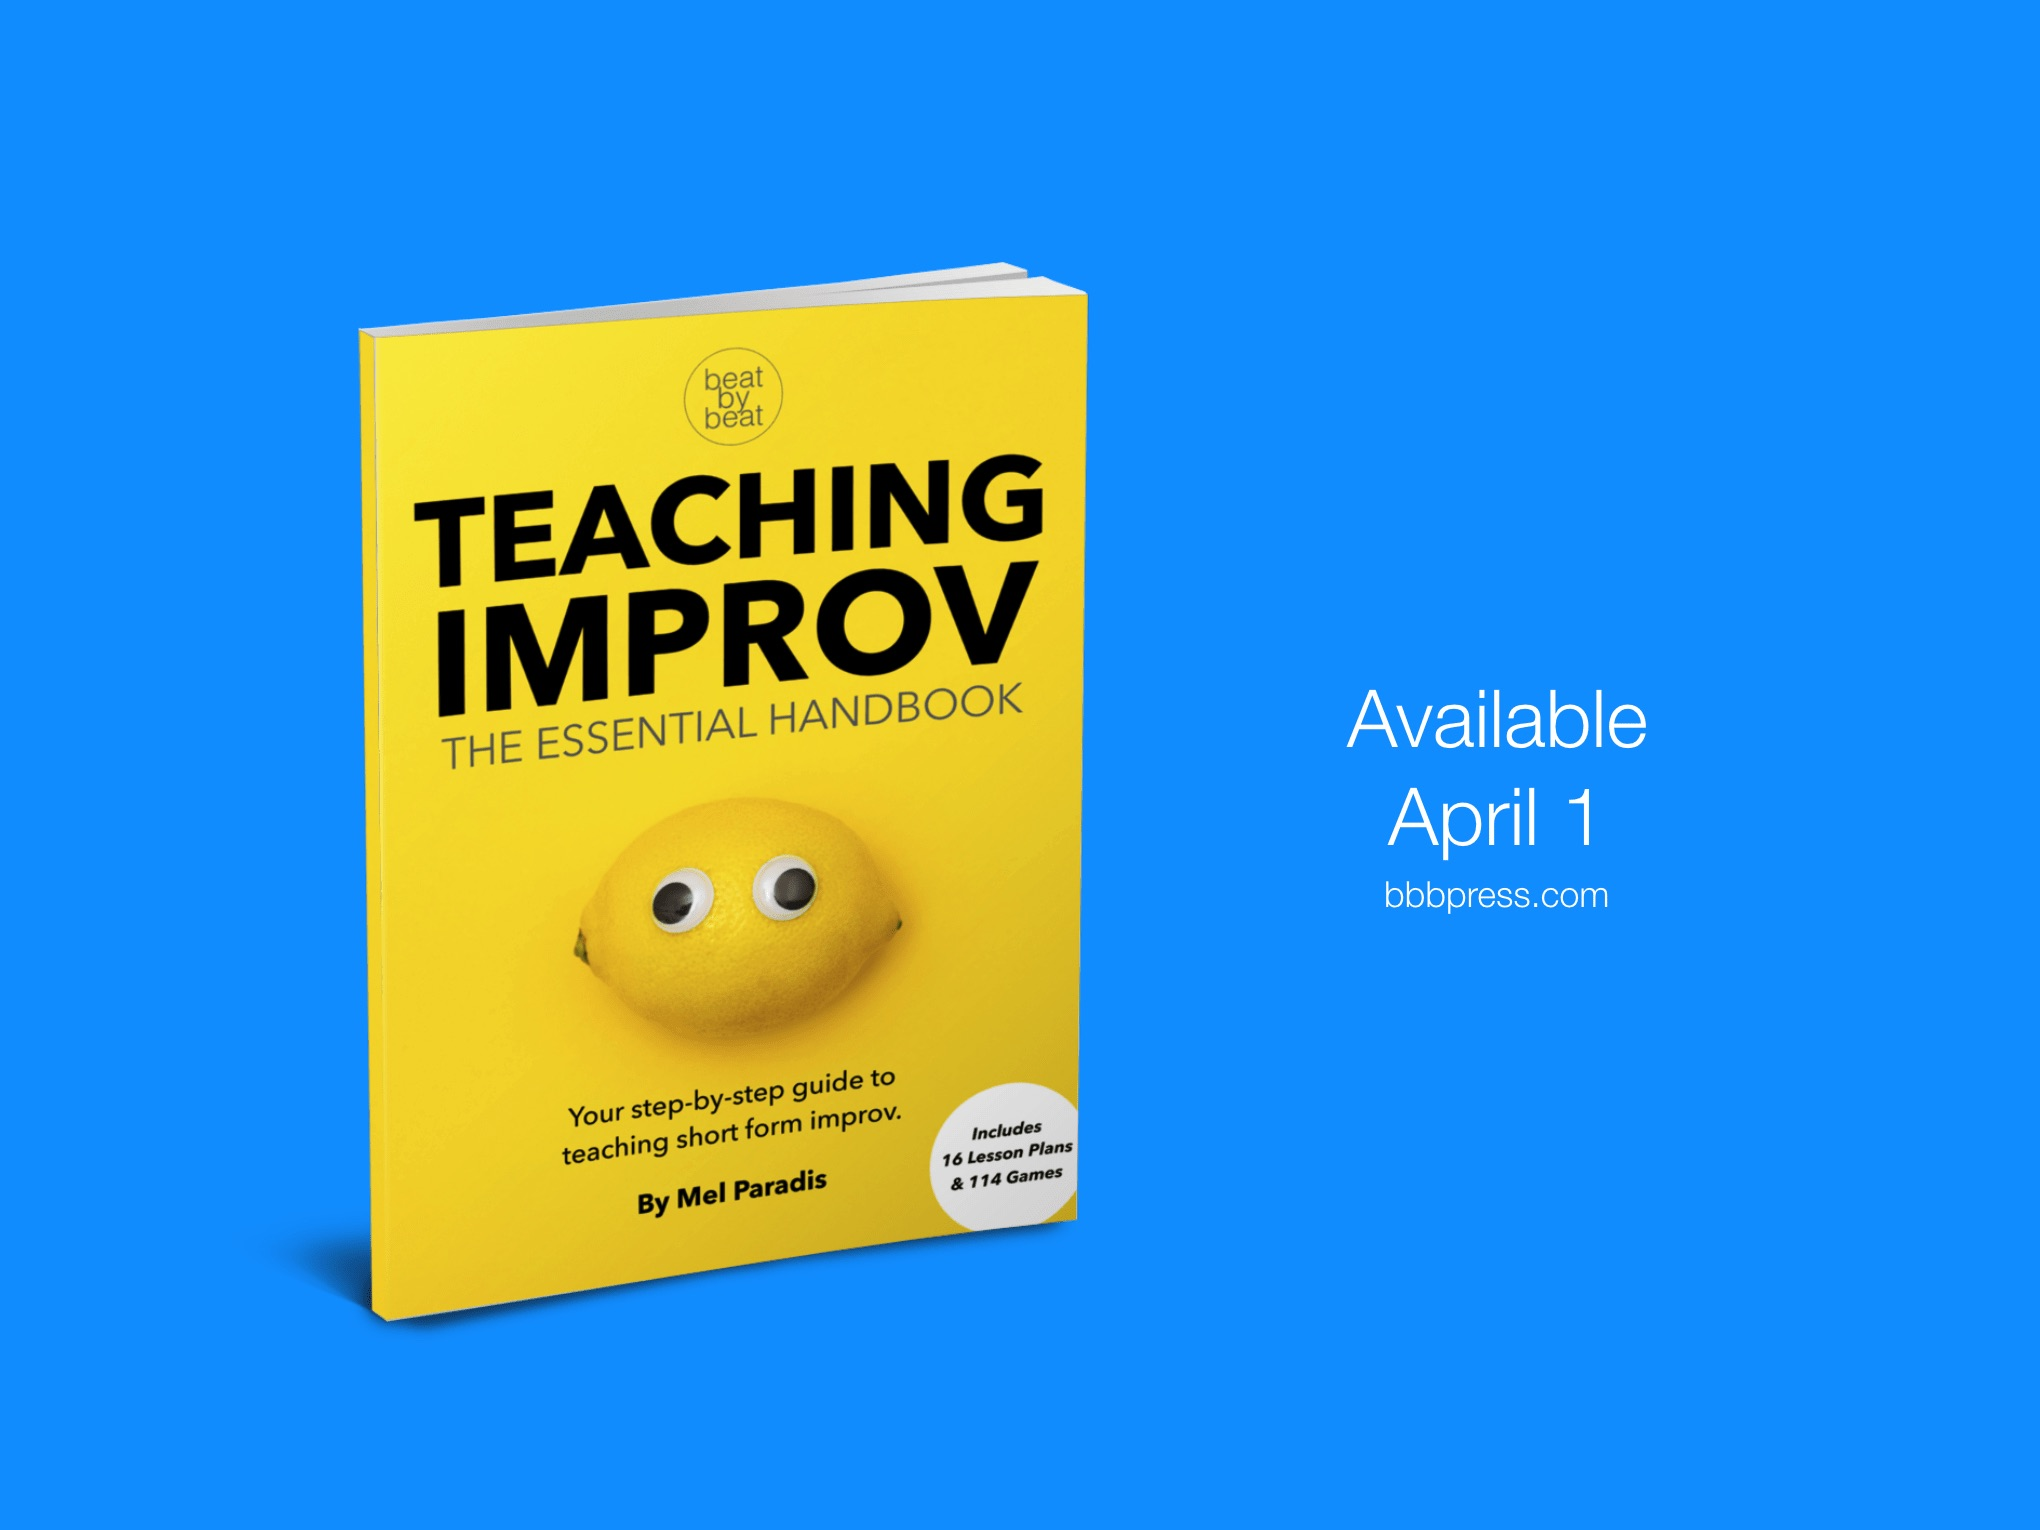 Lesson plans and improv games for kids.